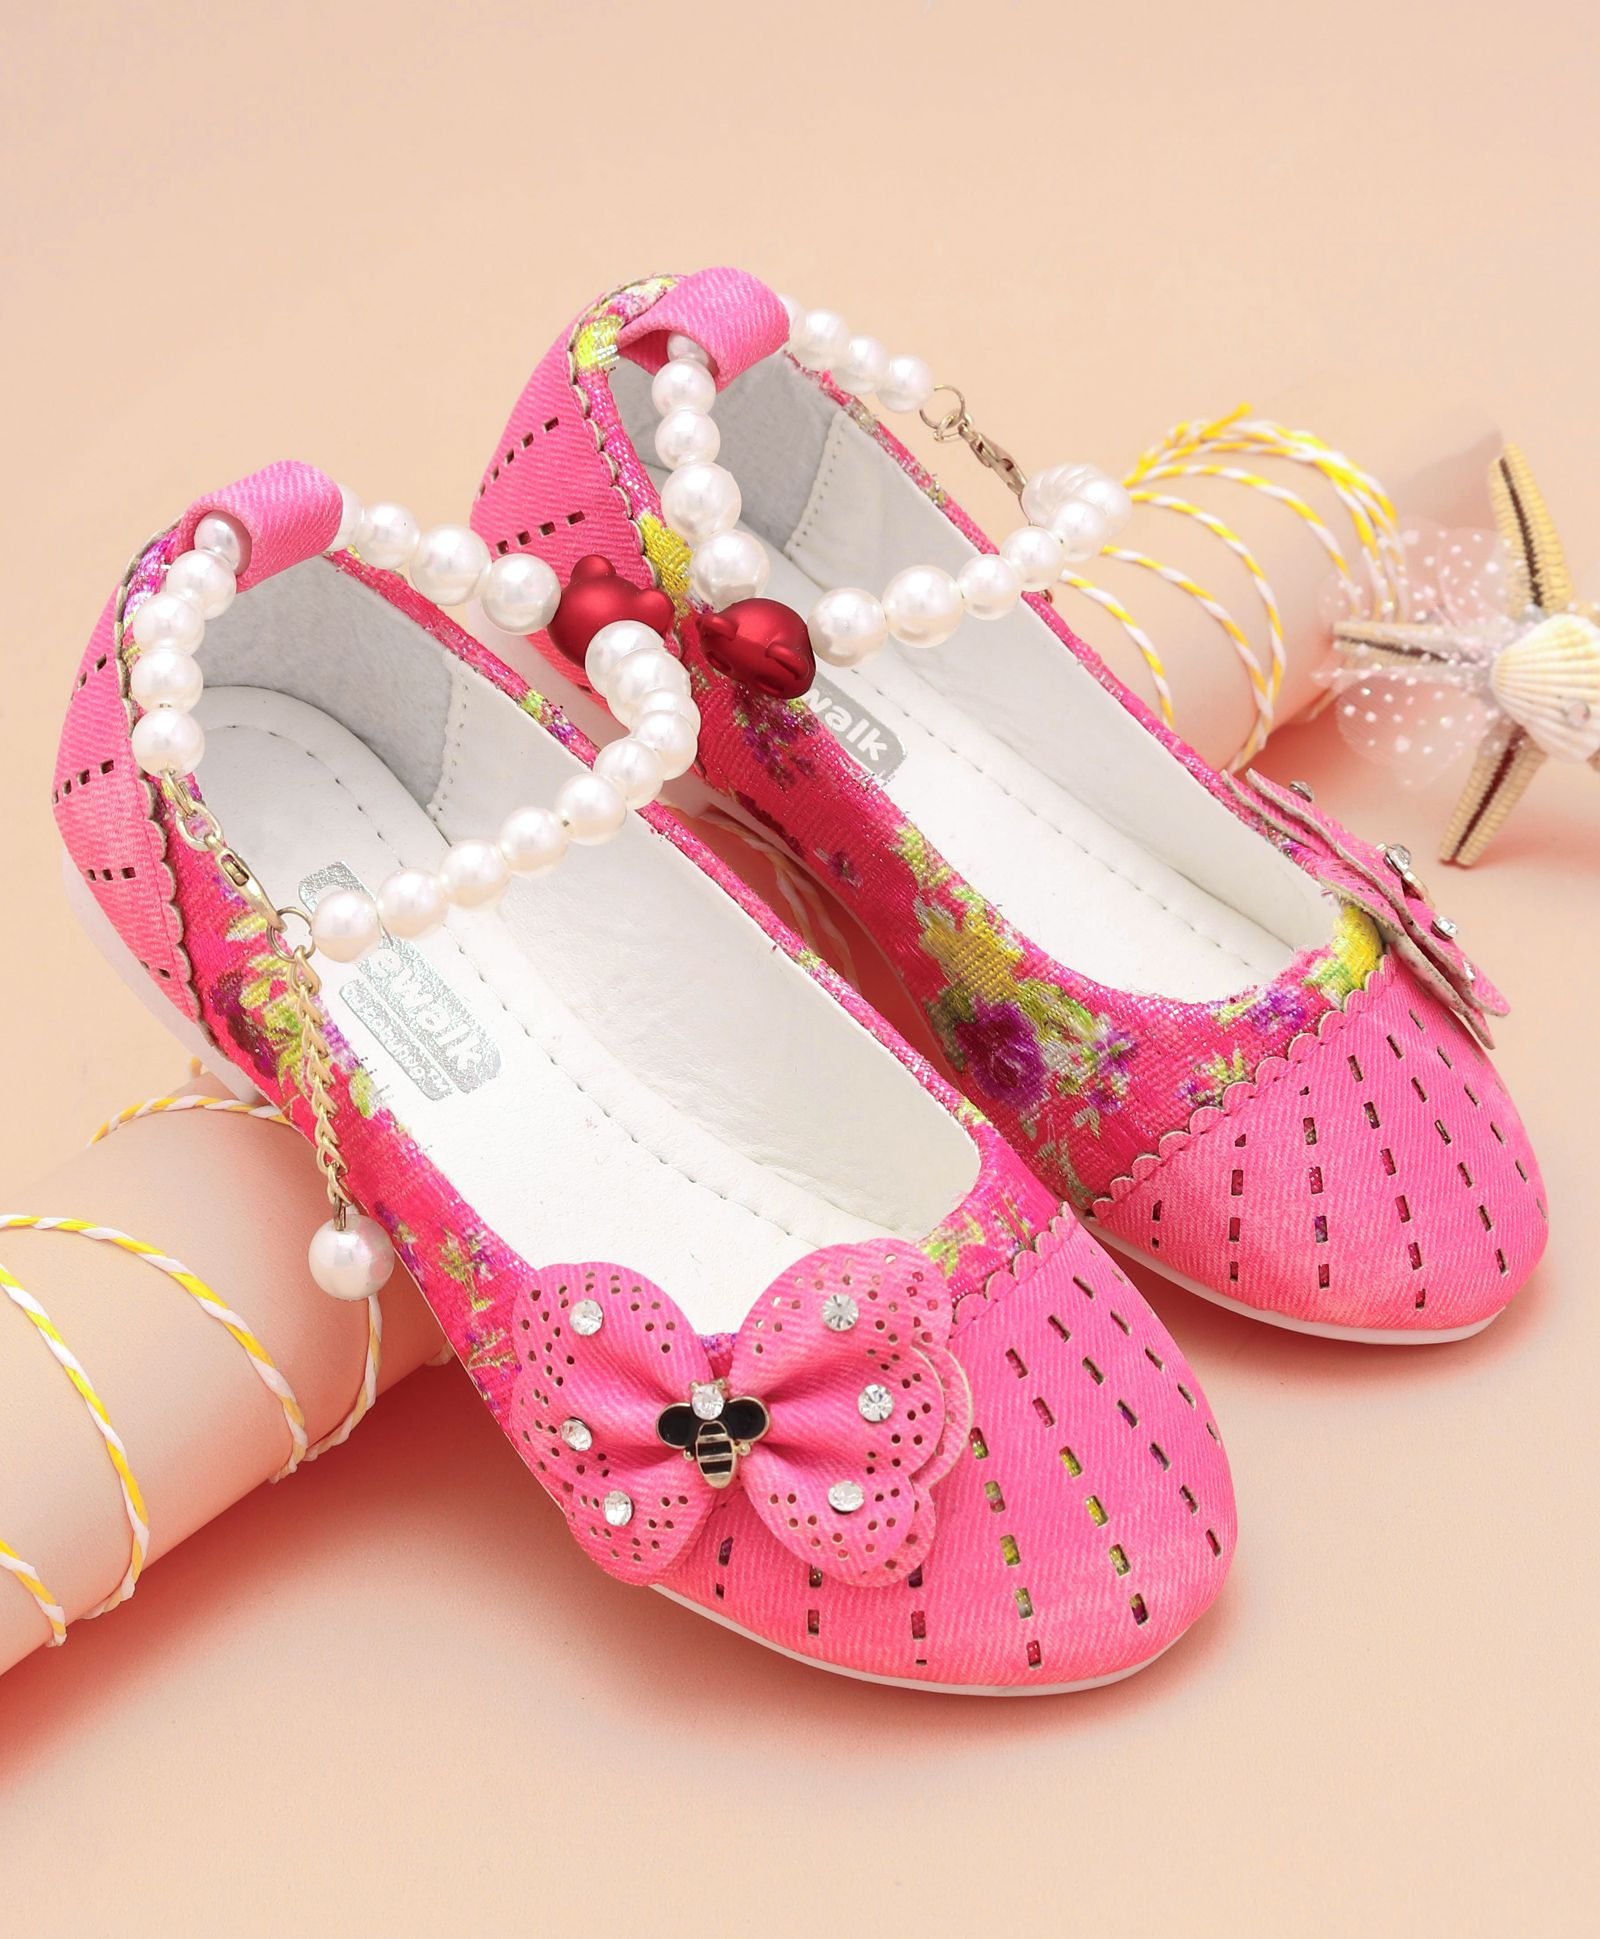 5f3d9c20305 Buy Cute Walk by Babyhug Party Wear Belly Shoes Butterfly Applique Pink for  Girls (3-4 Years) Online, Shop at FirstCry.com - 2143115